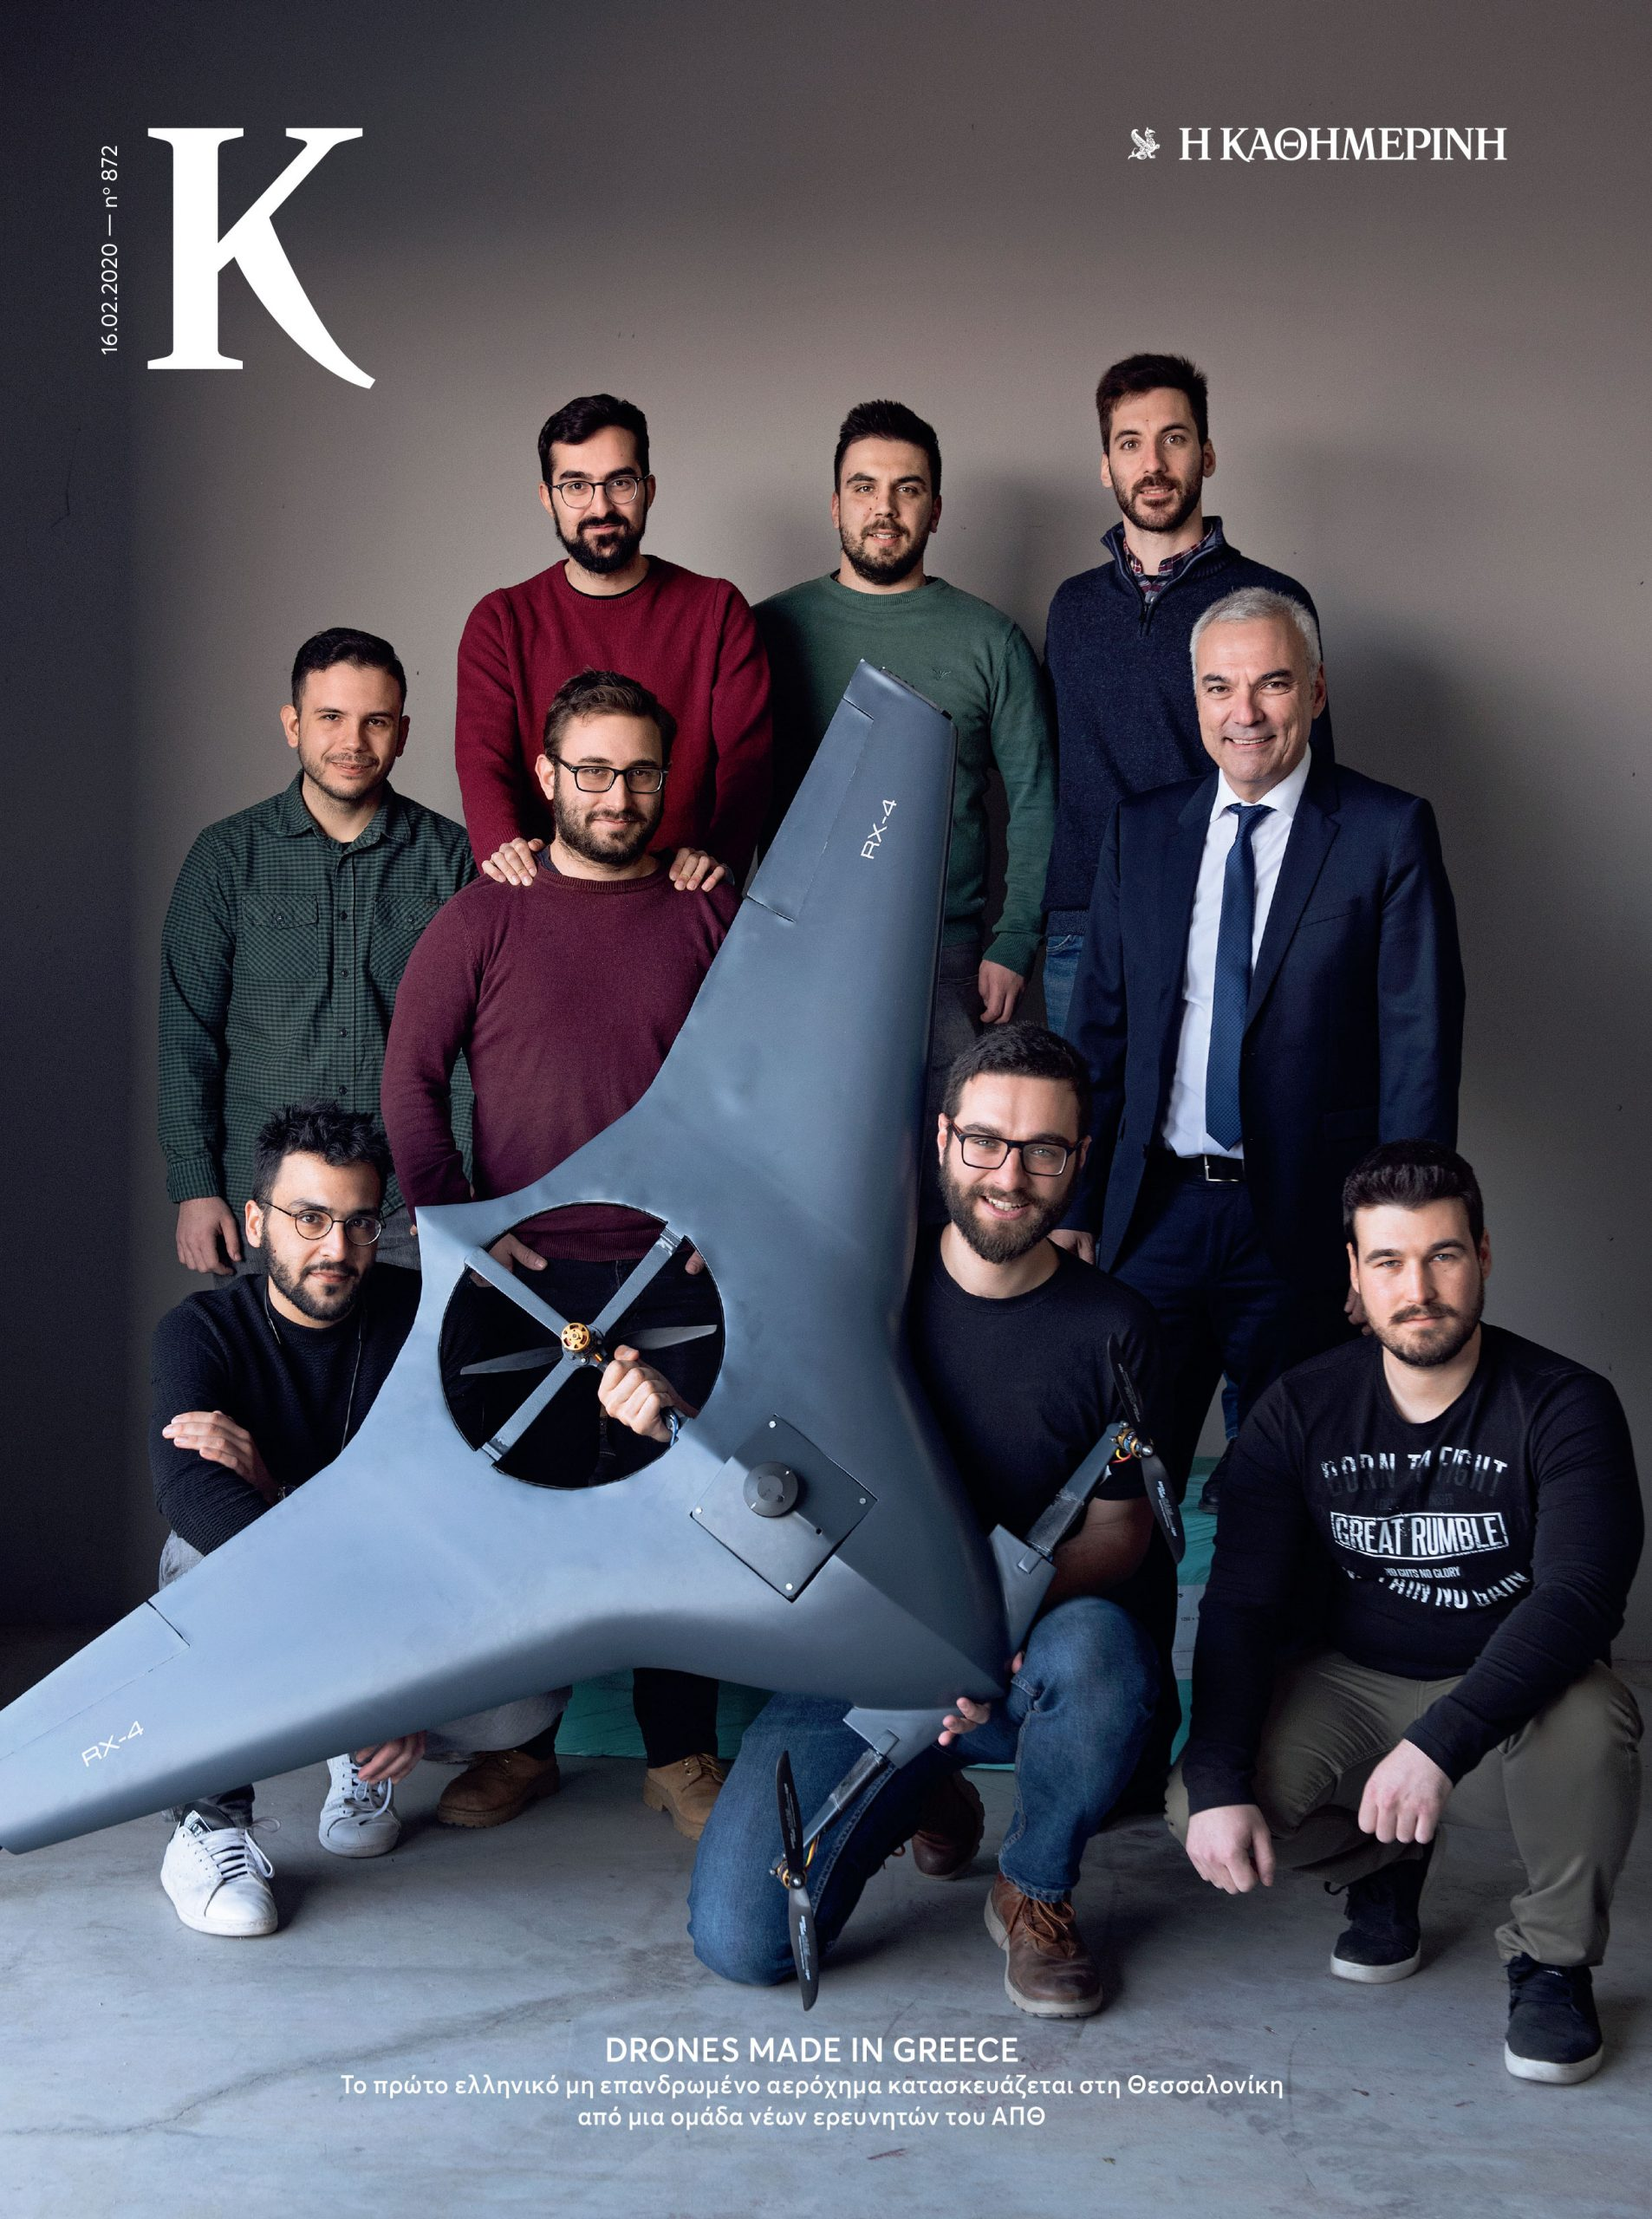 drones-made-in-greece0